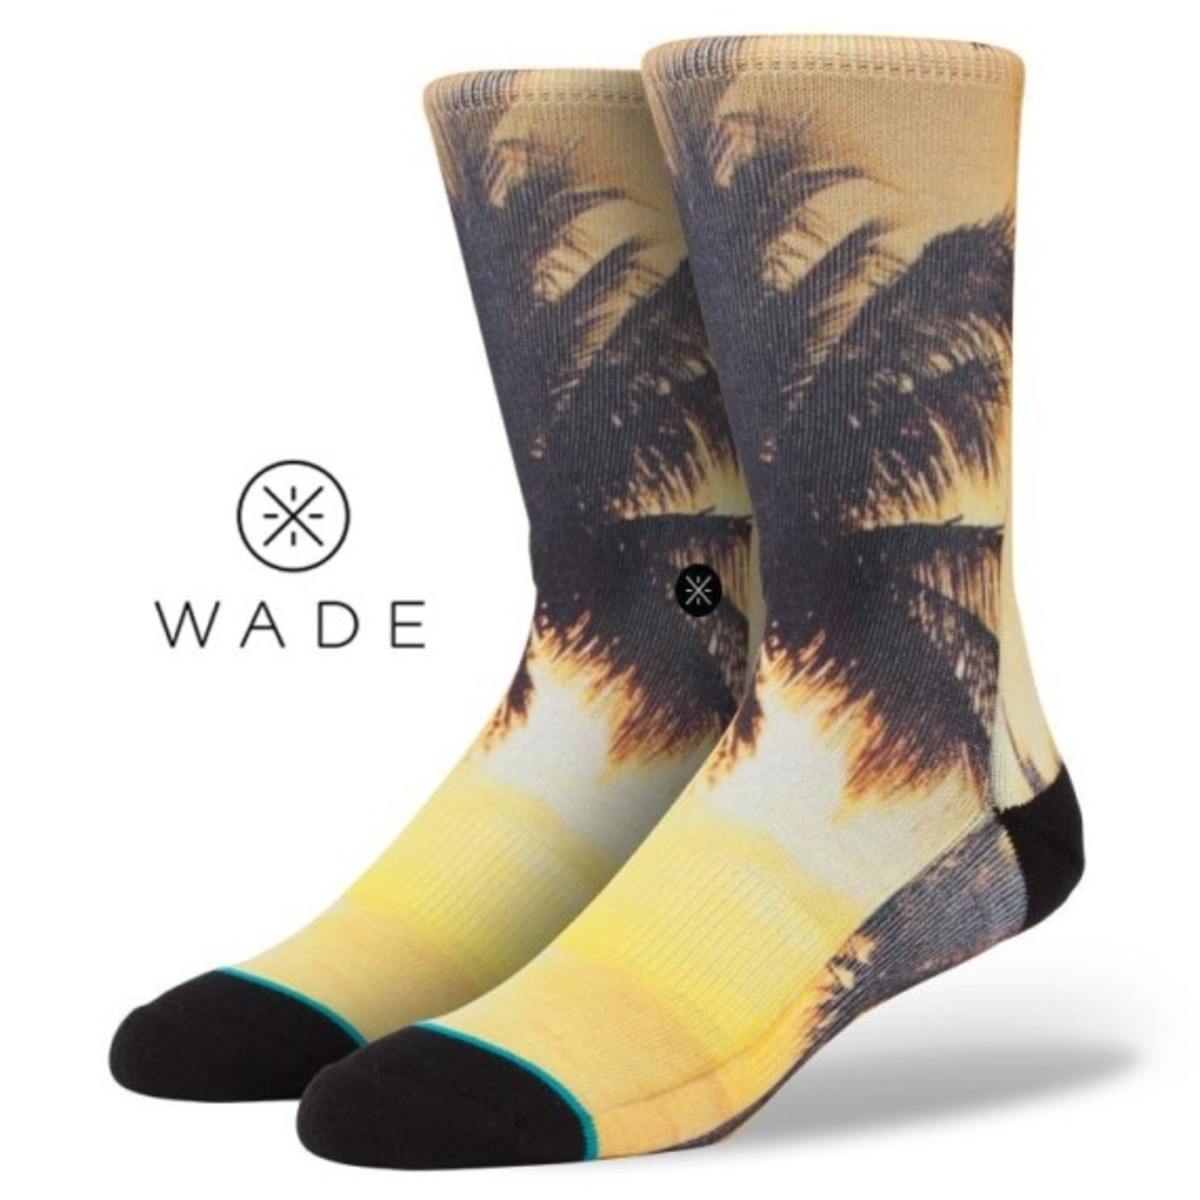 Dwyane Wade x Stance Socks – Summer 2014 Collection - 1